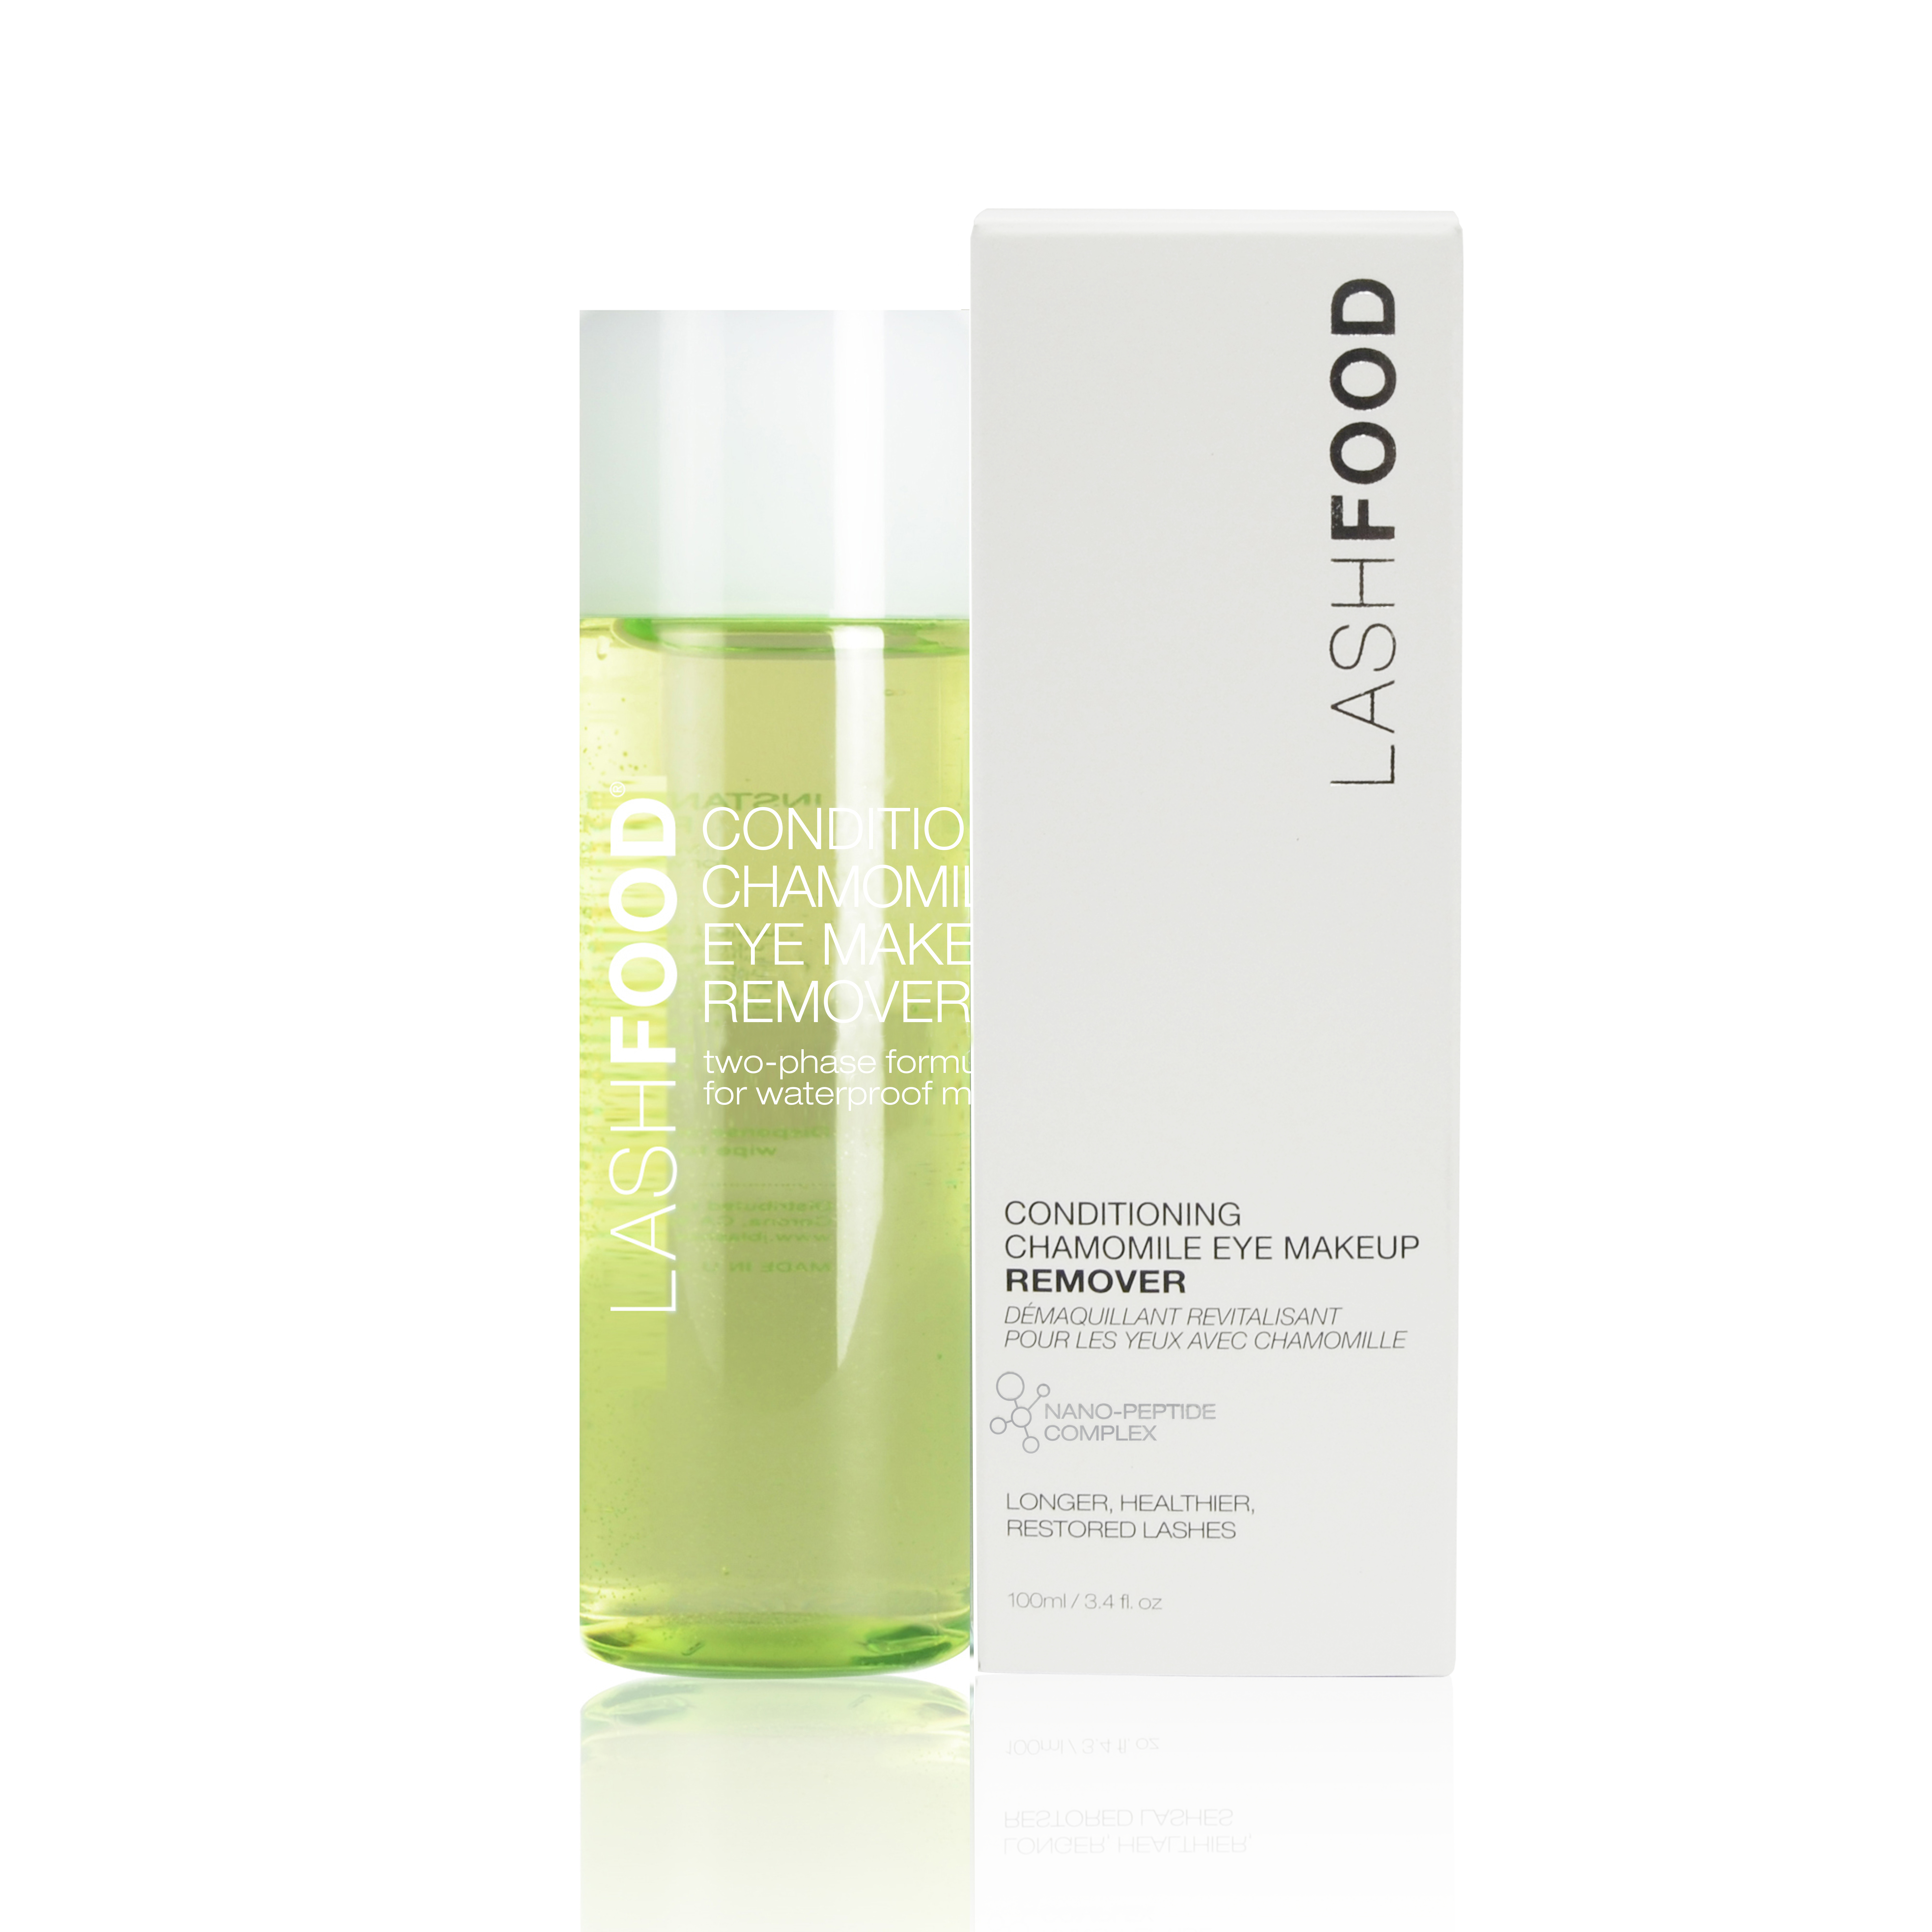 Conditioning Chamomile Eye Make Up Remover Clear